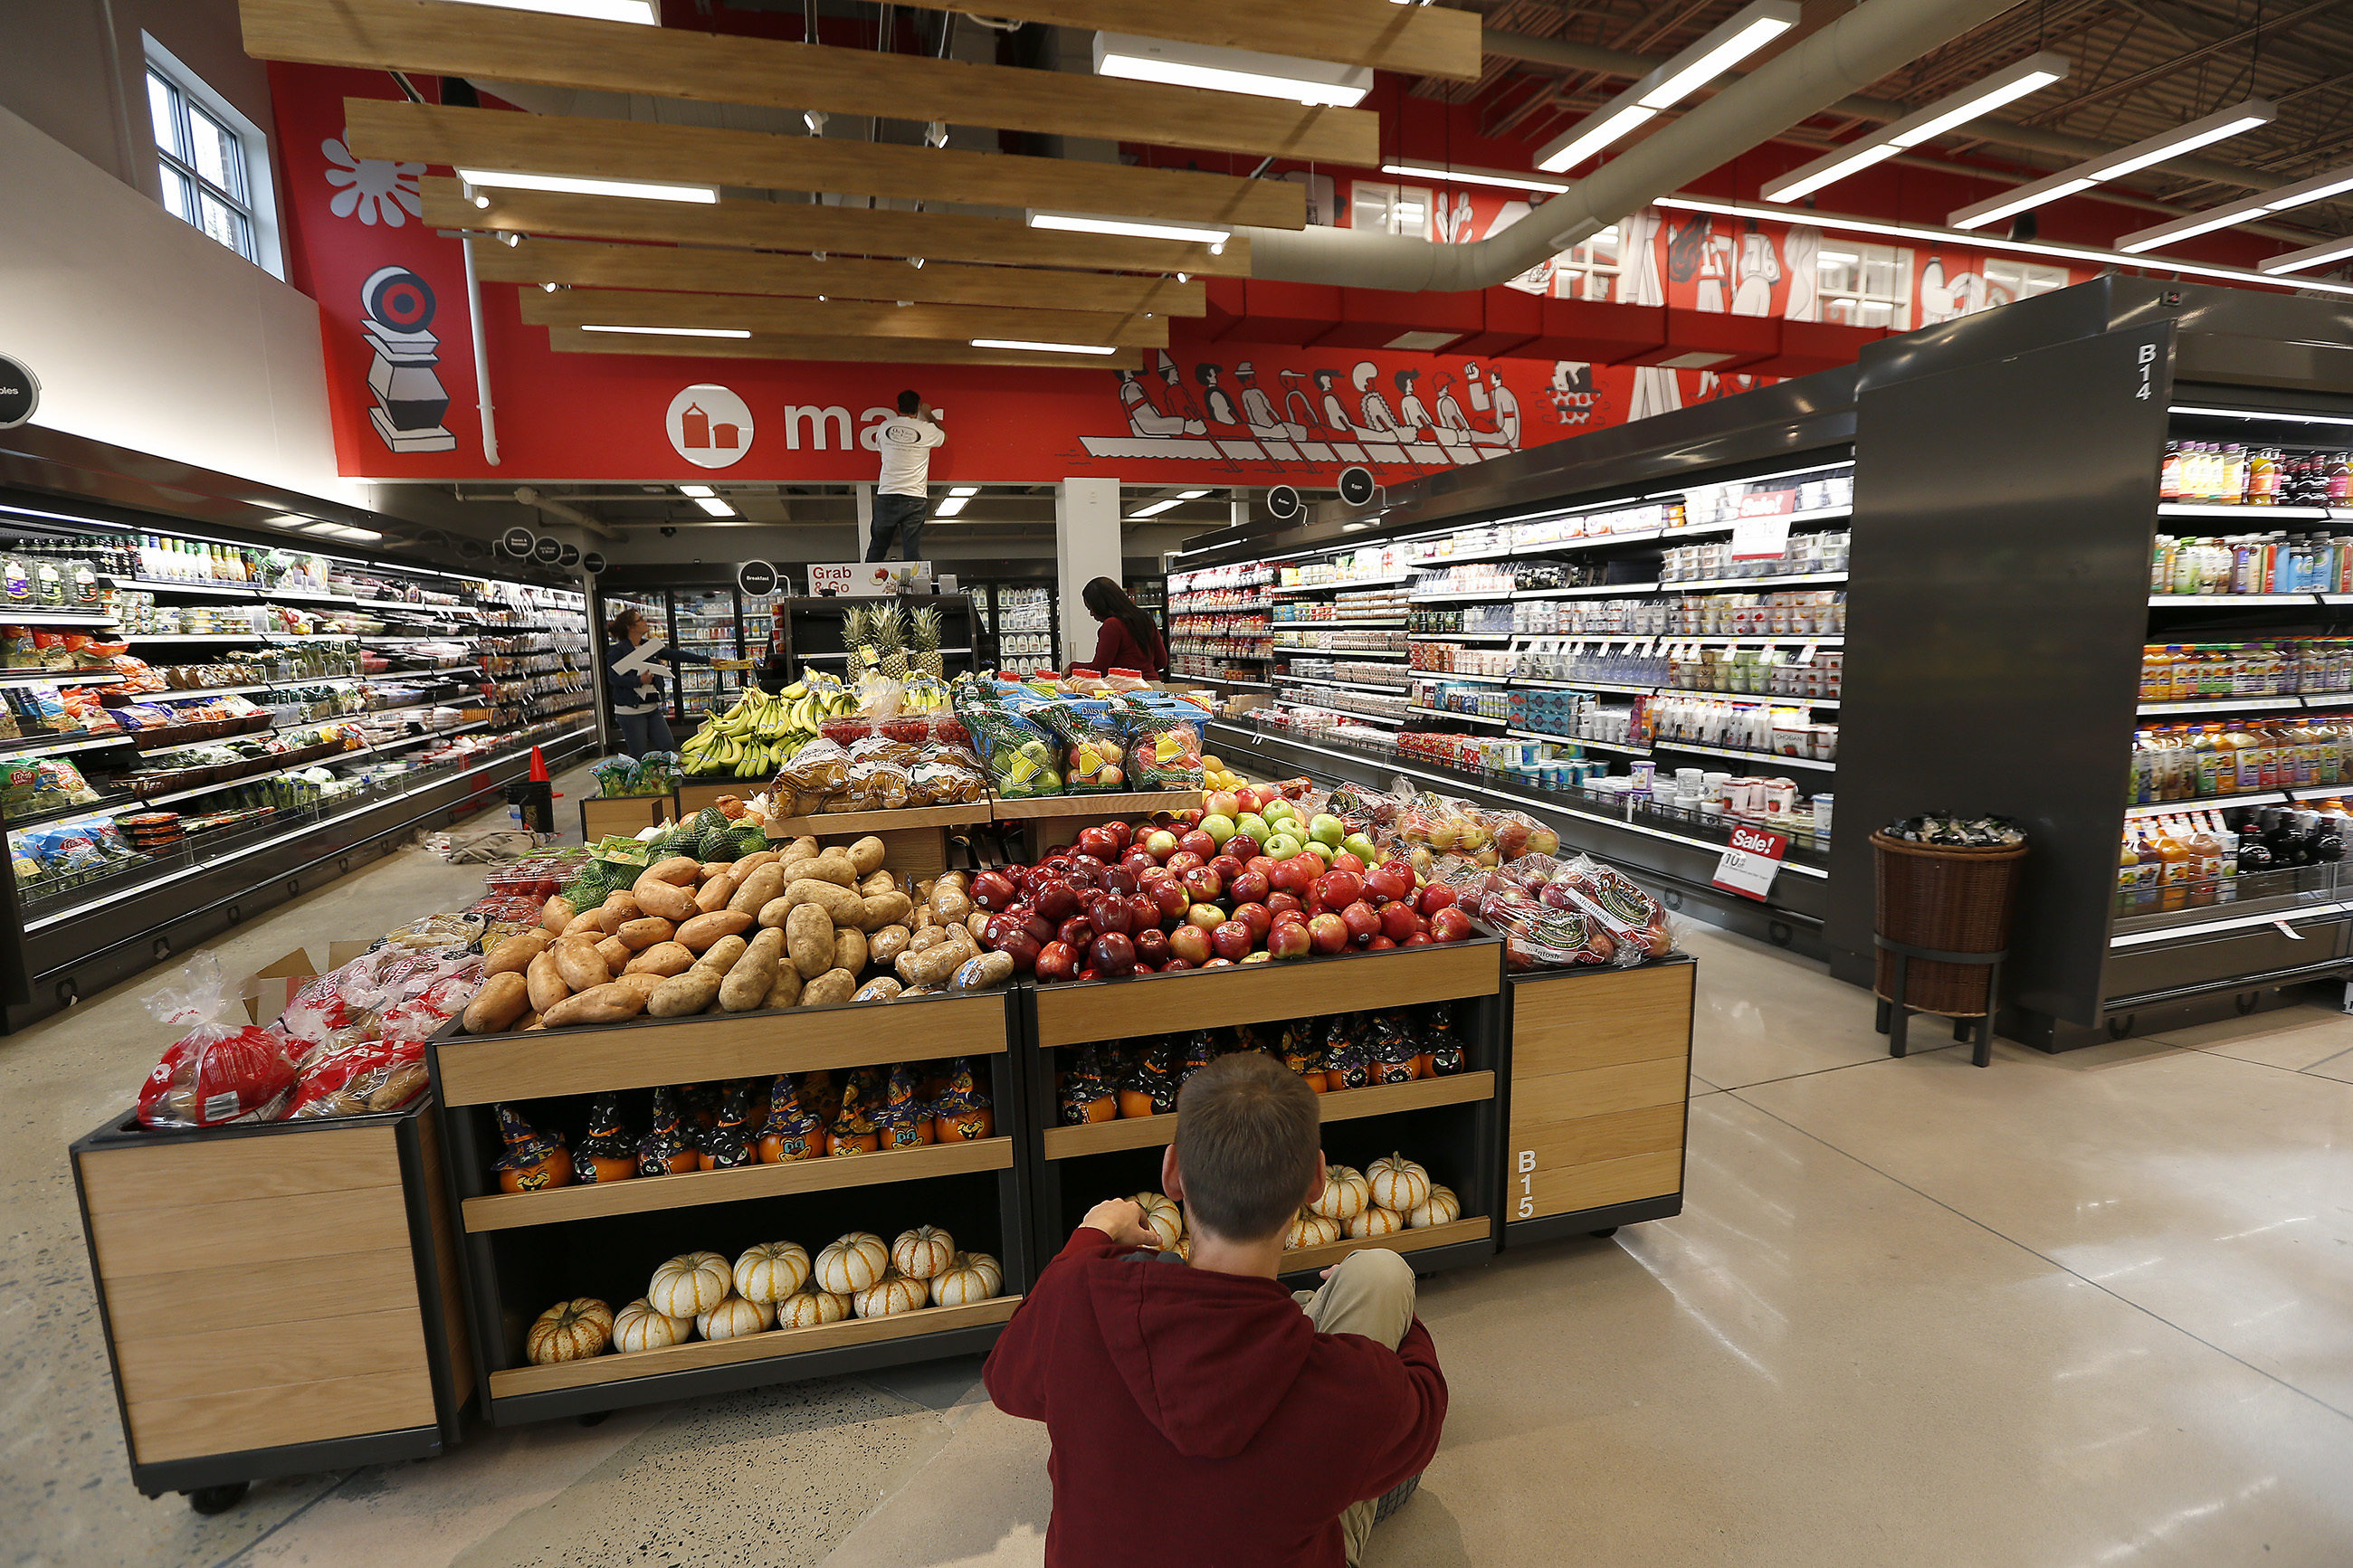 An employee stocks produce inside the new smaller format Target store in the Art Museum area that opens to the public this Wednesday at 7 a.m.